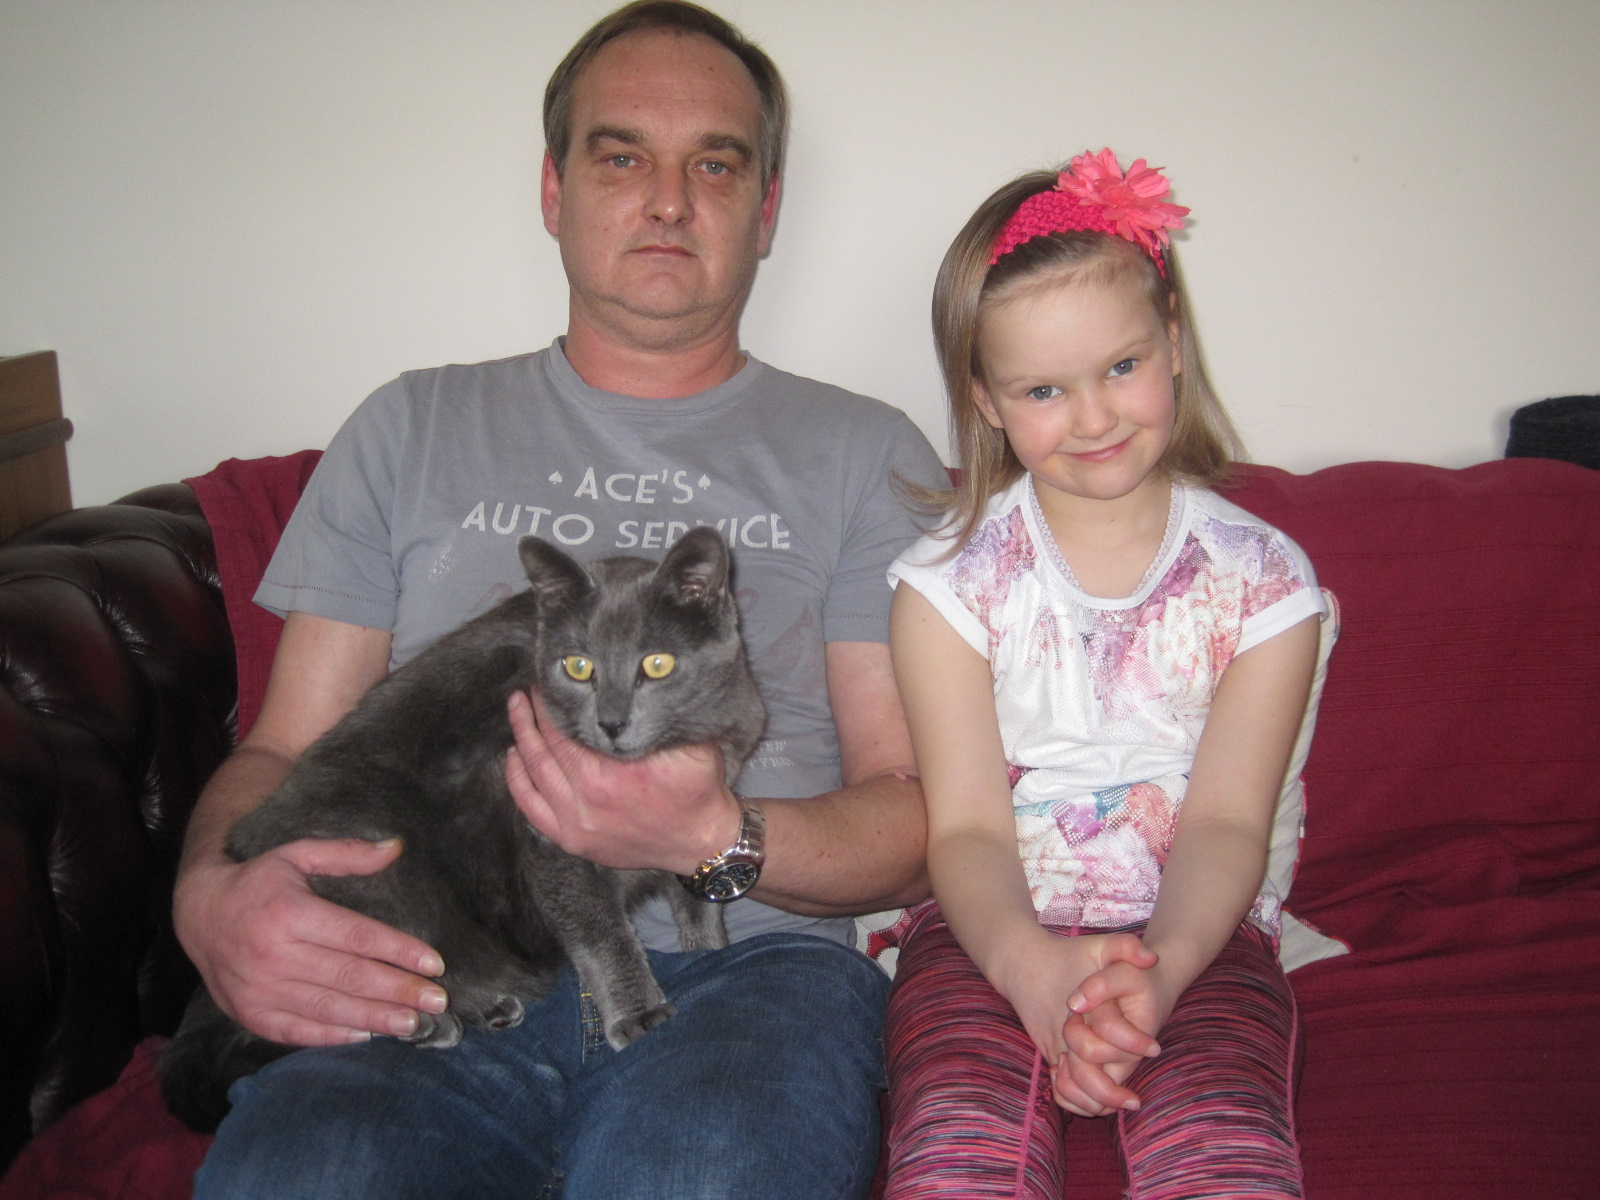 Bill the cat with owner Scott MacEachern and his daughter Rose